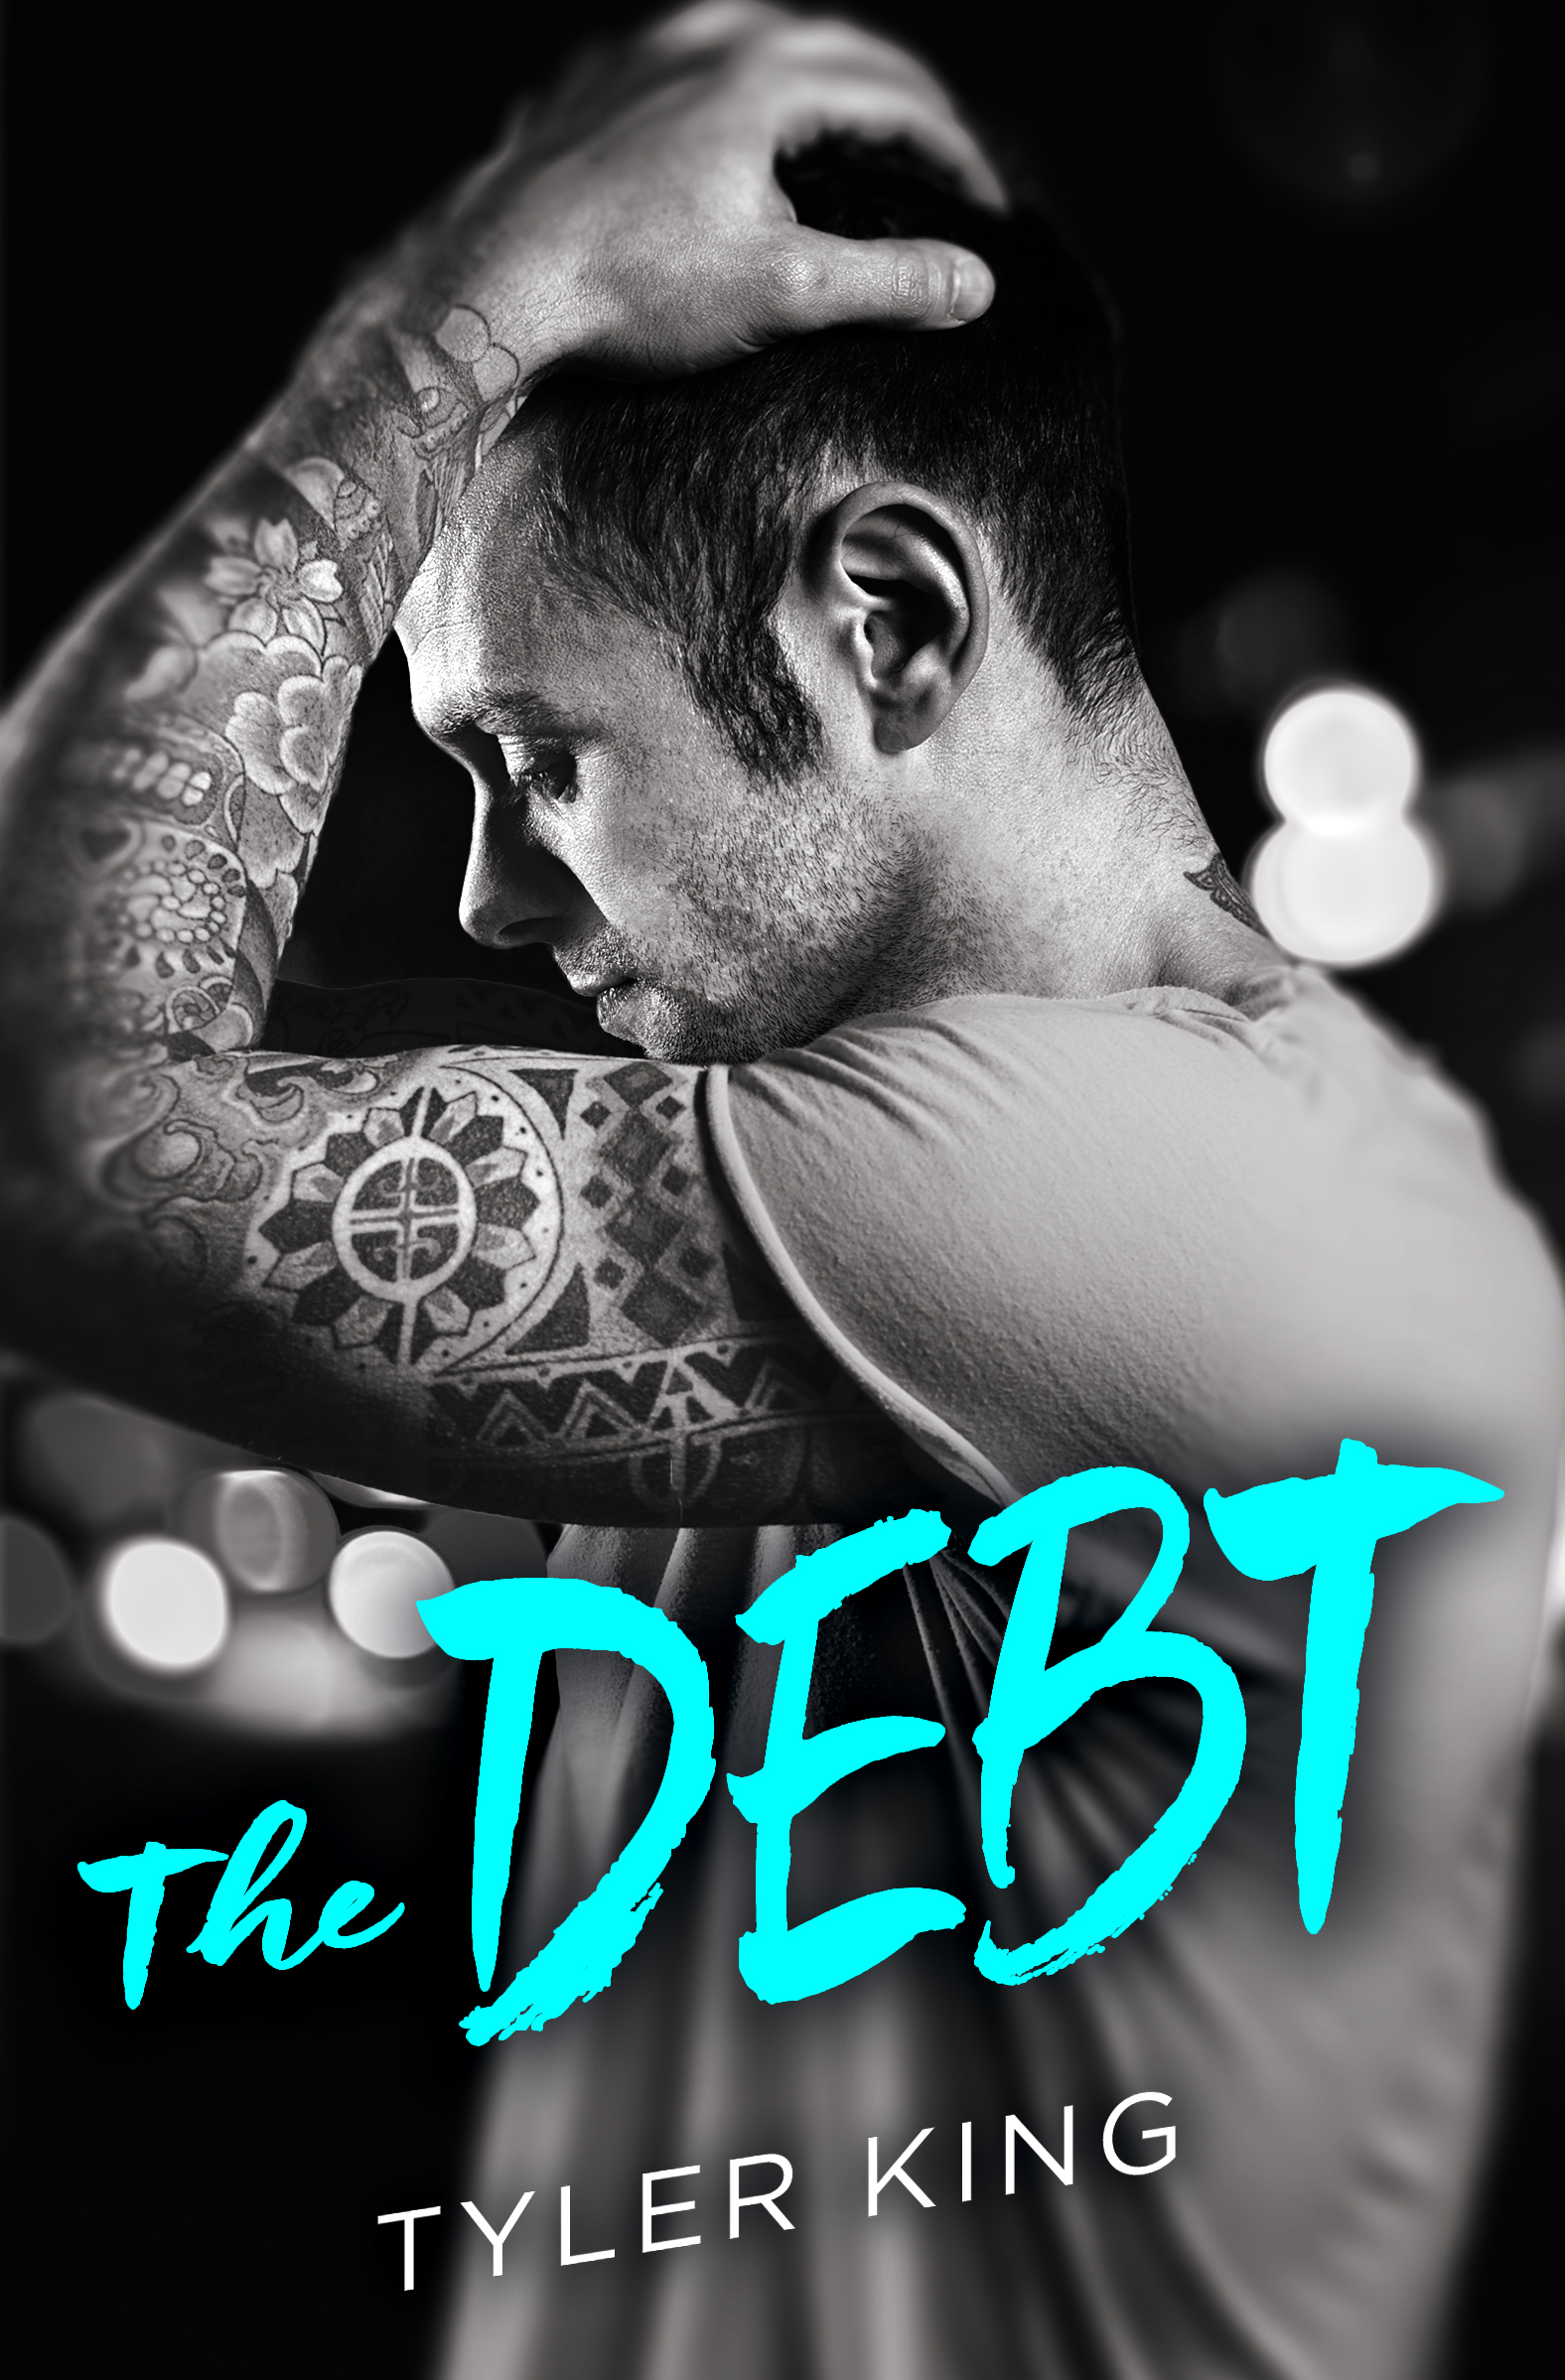 THE DEBT Cover – Tyler King